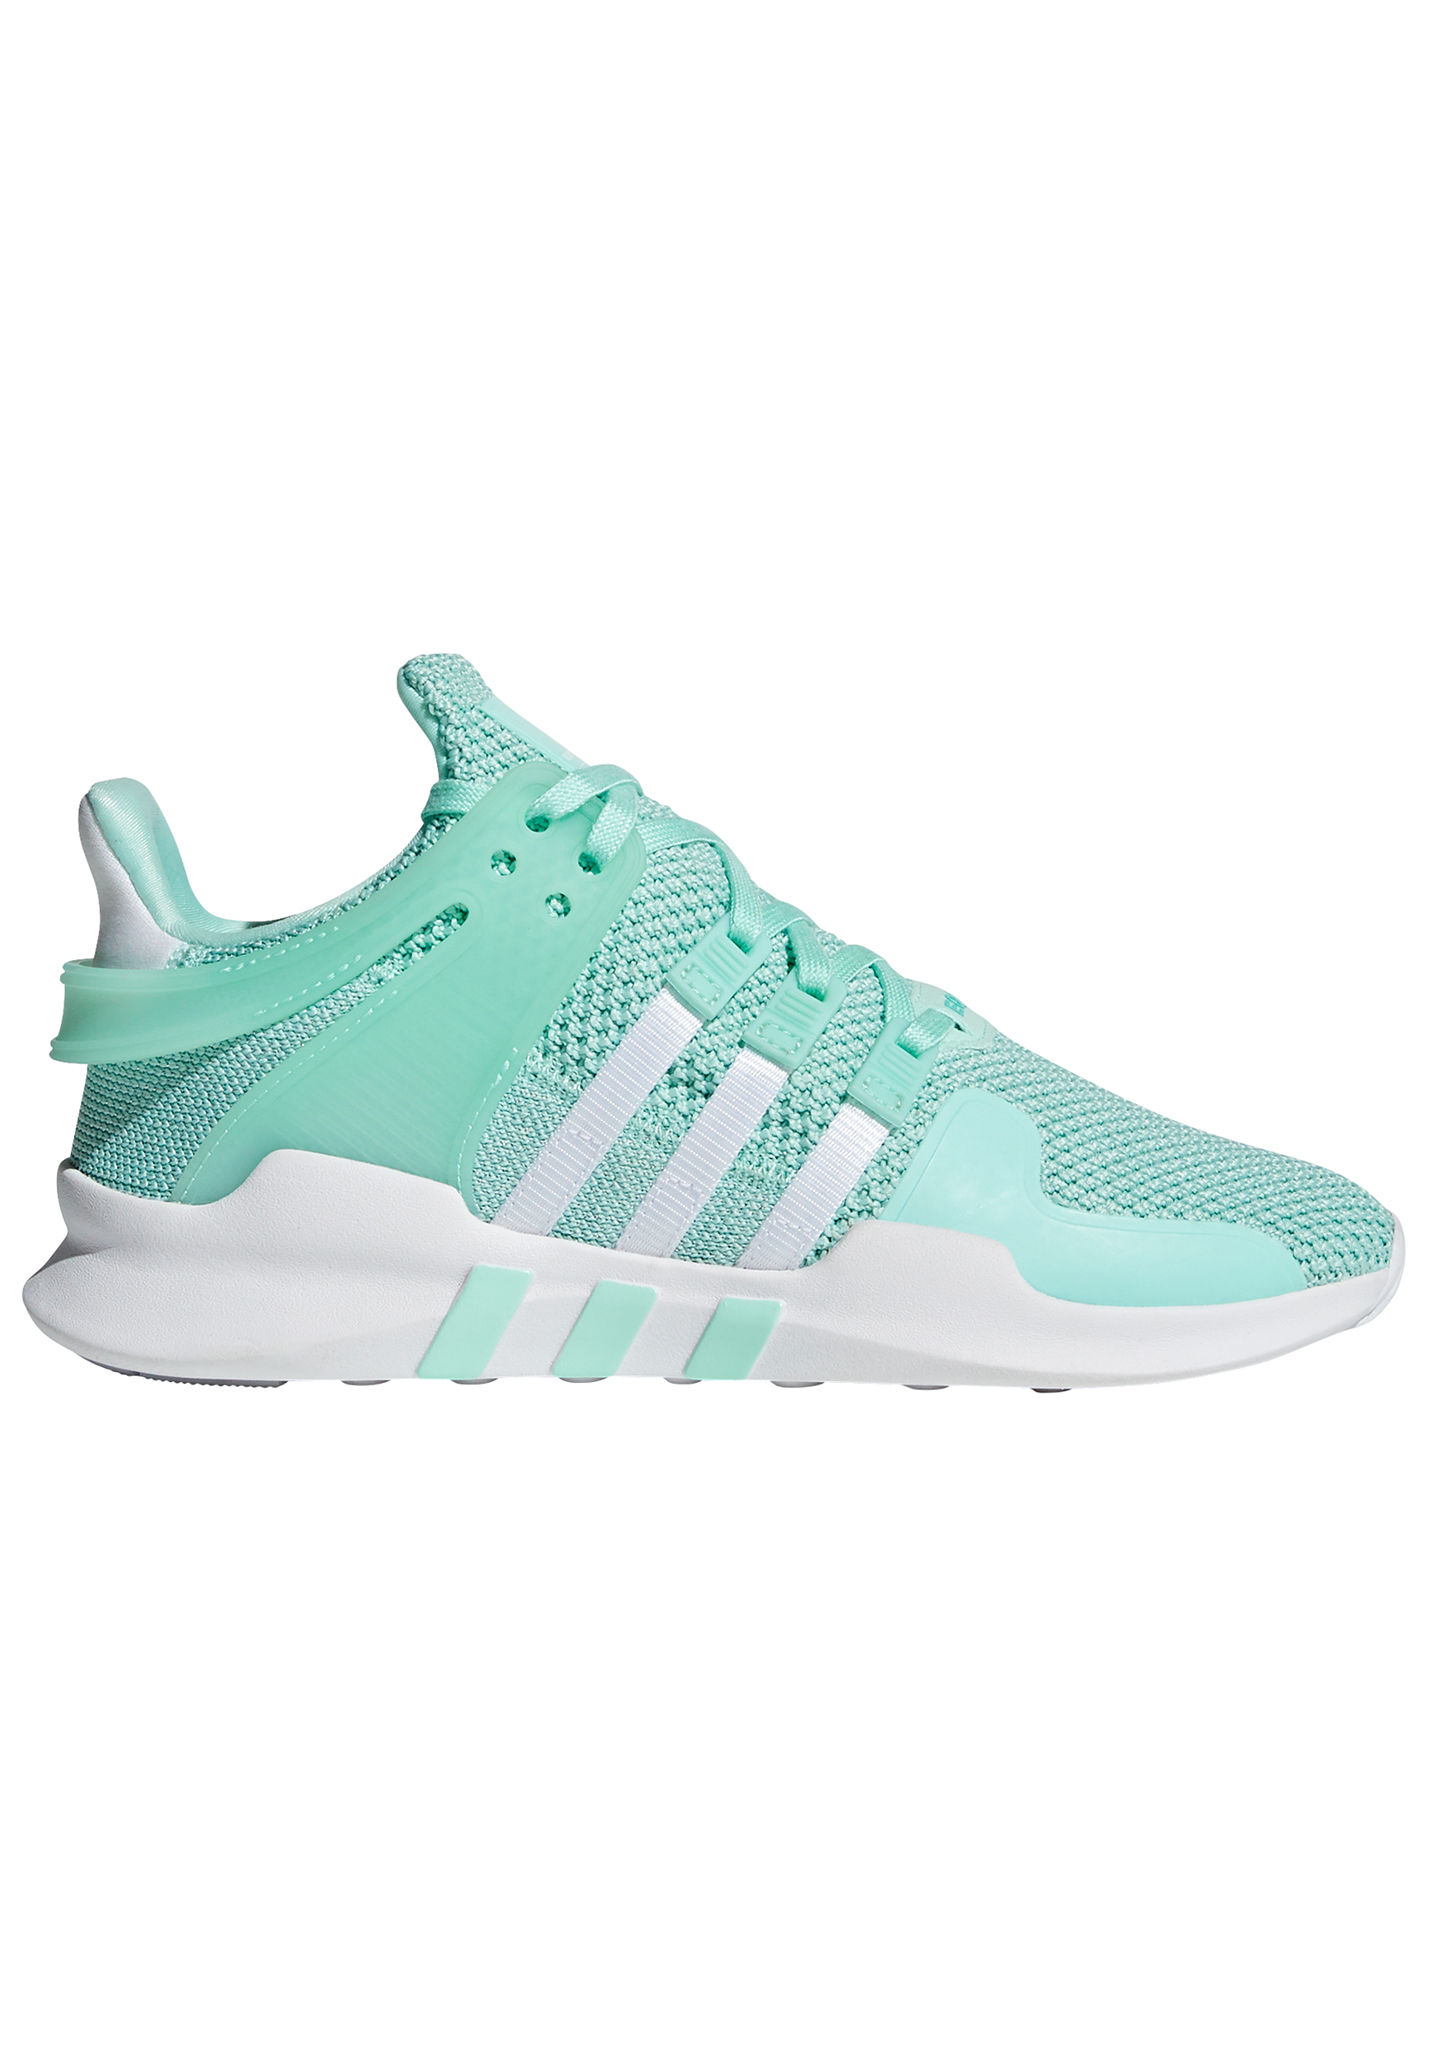 reputable site 7434f 1035d ADIDAS ORIGINALS EQT Support Sk Pk - Sneakers for Women - Green - Planet  Sports